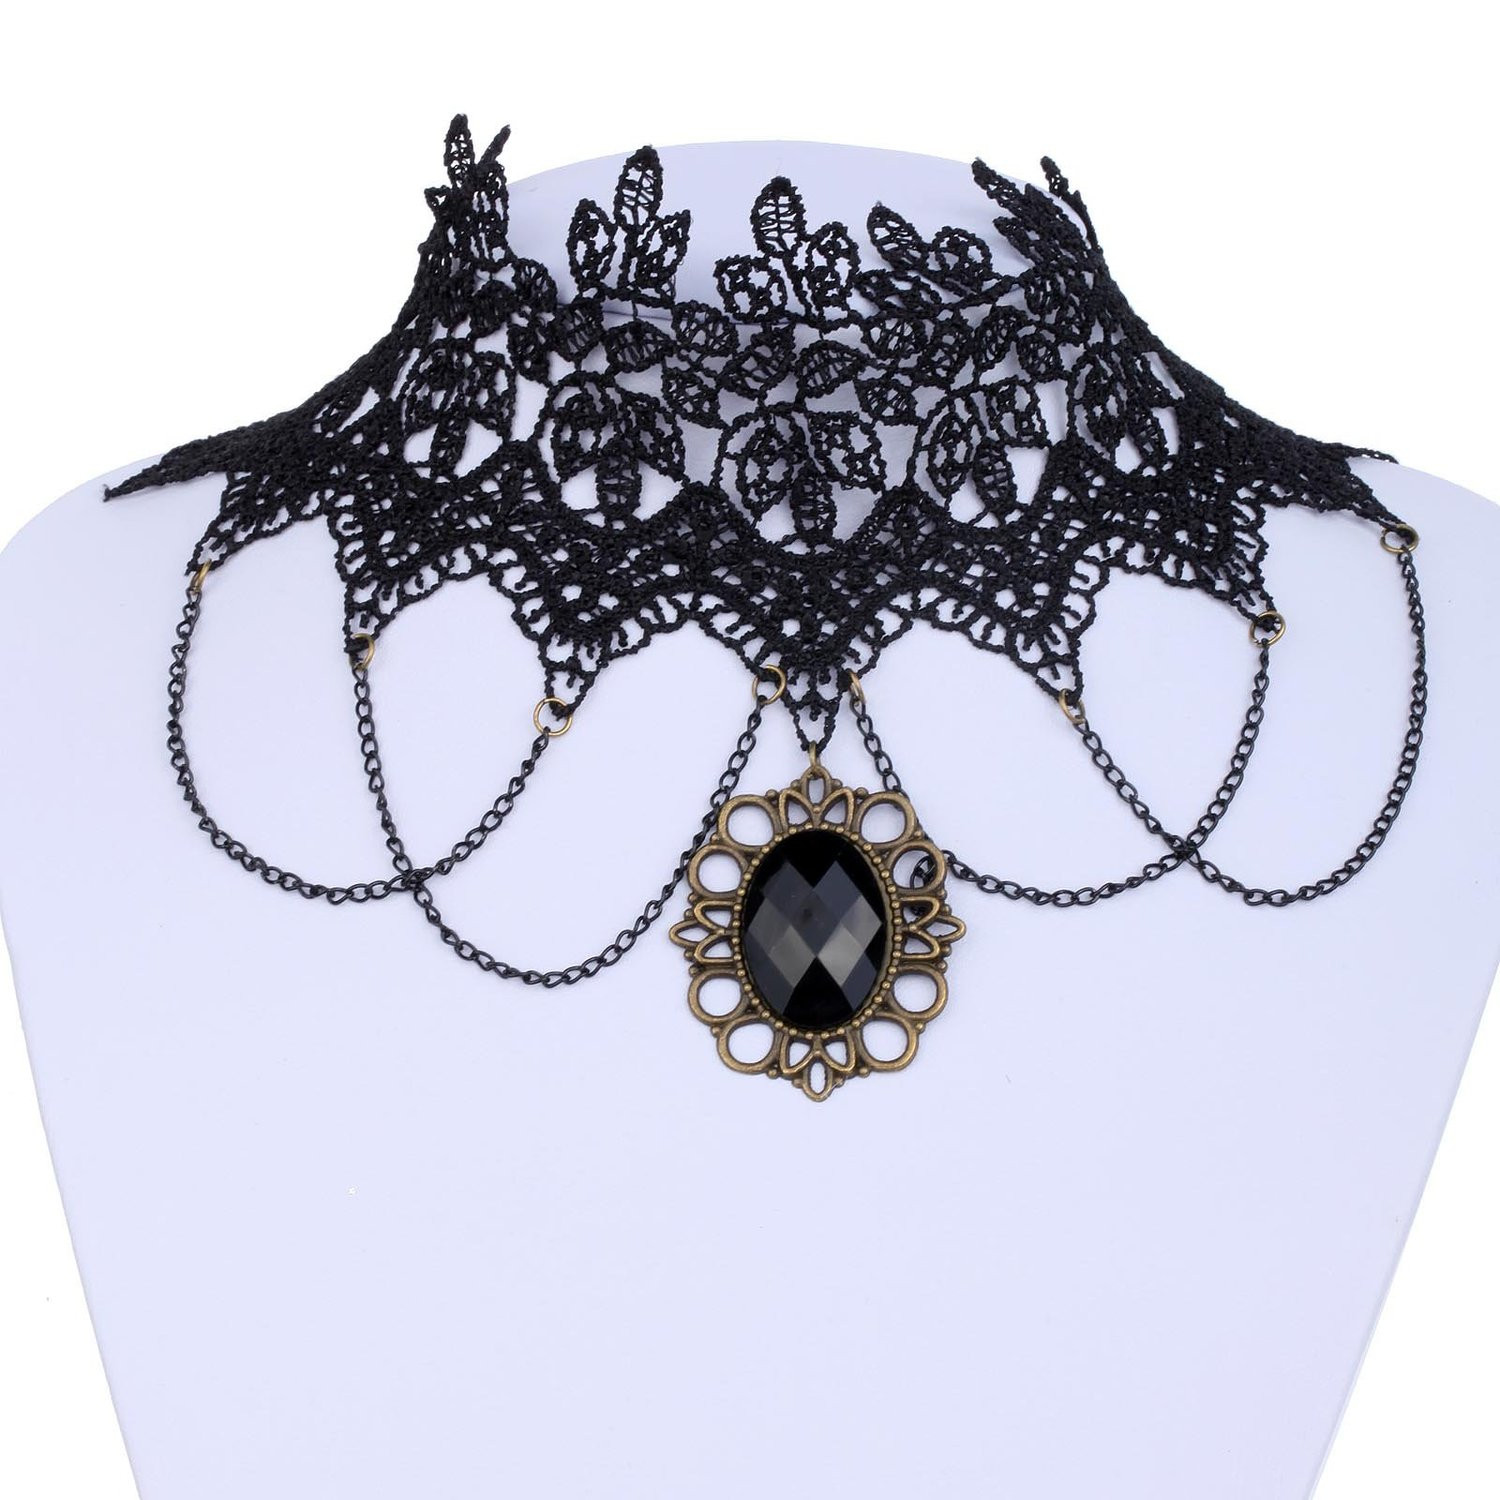 Steampunk Retro Lace Gemstone Pendant Choker